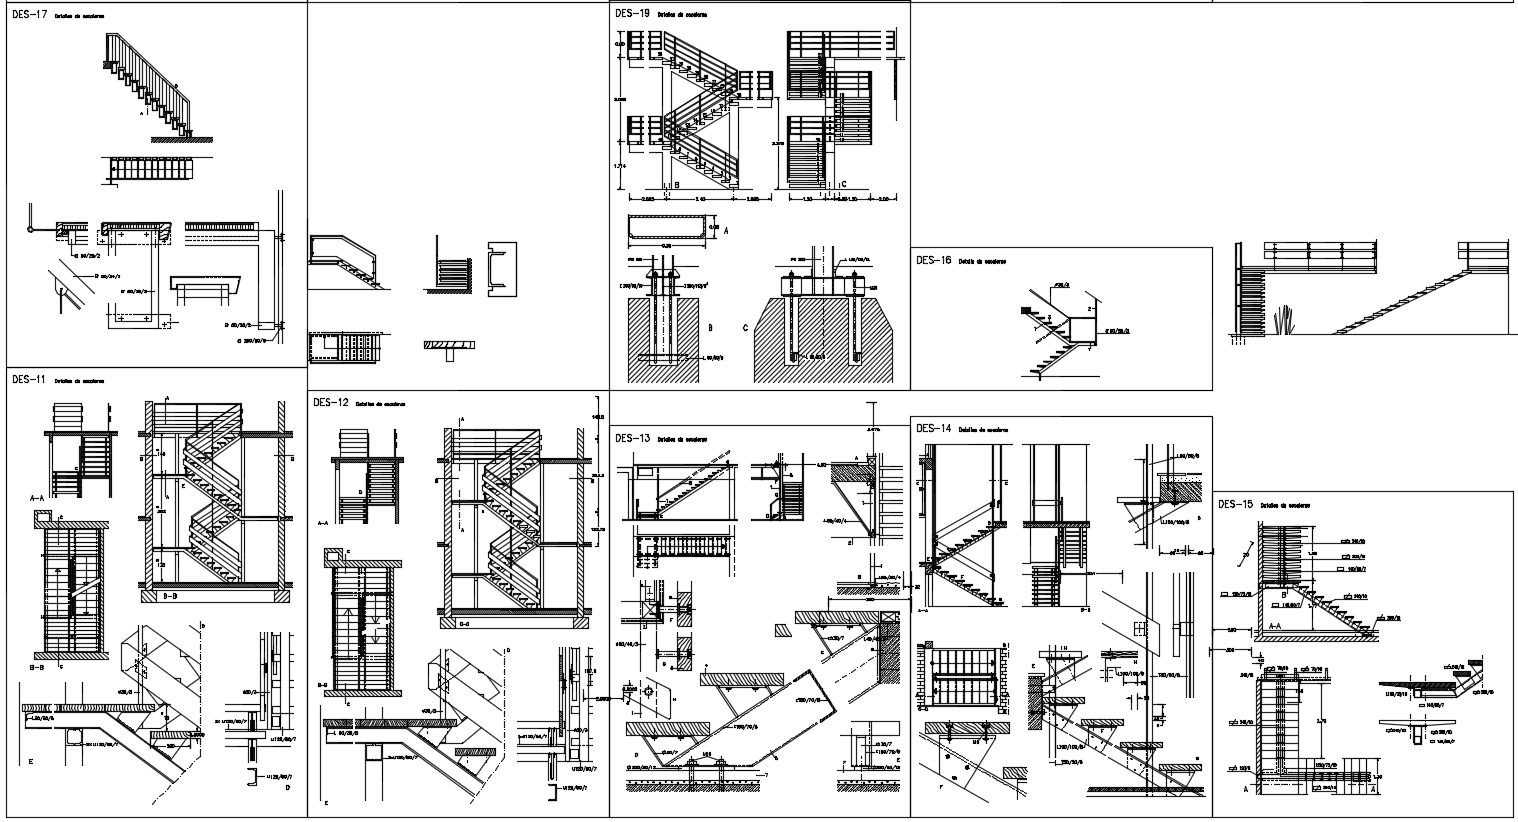 Detail drawing of stair design drawing with all detailing drawing in this auto cad file.